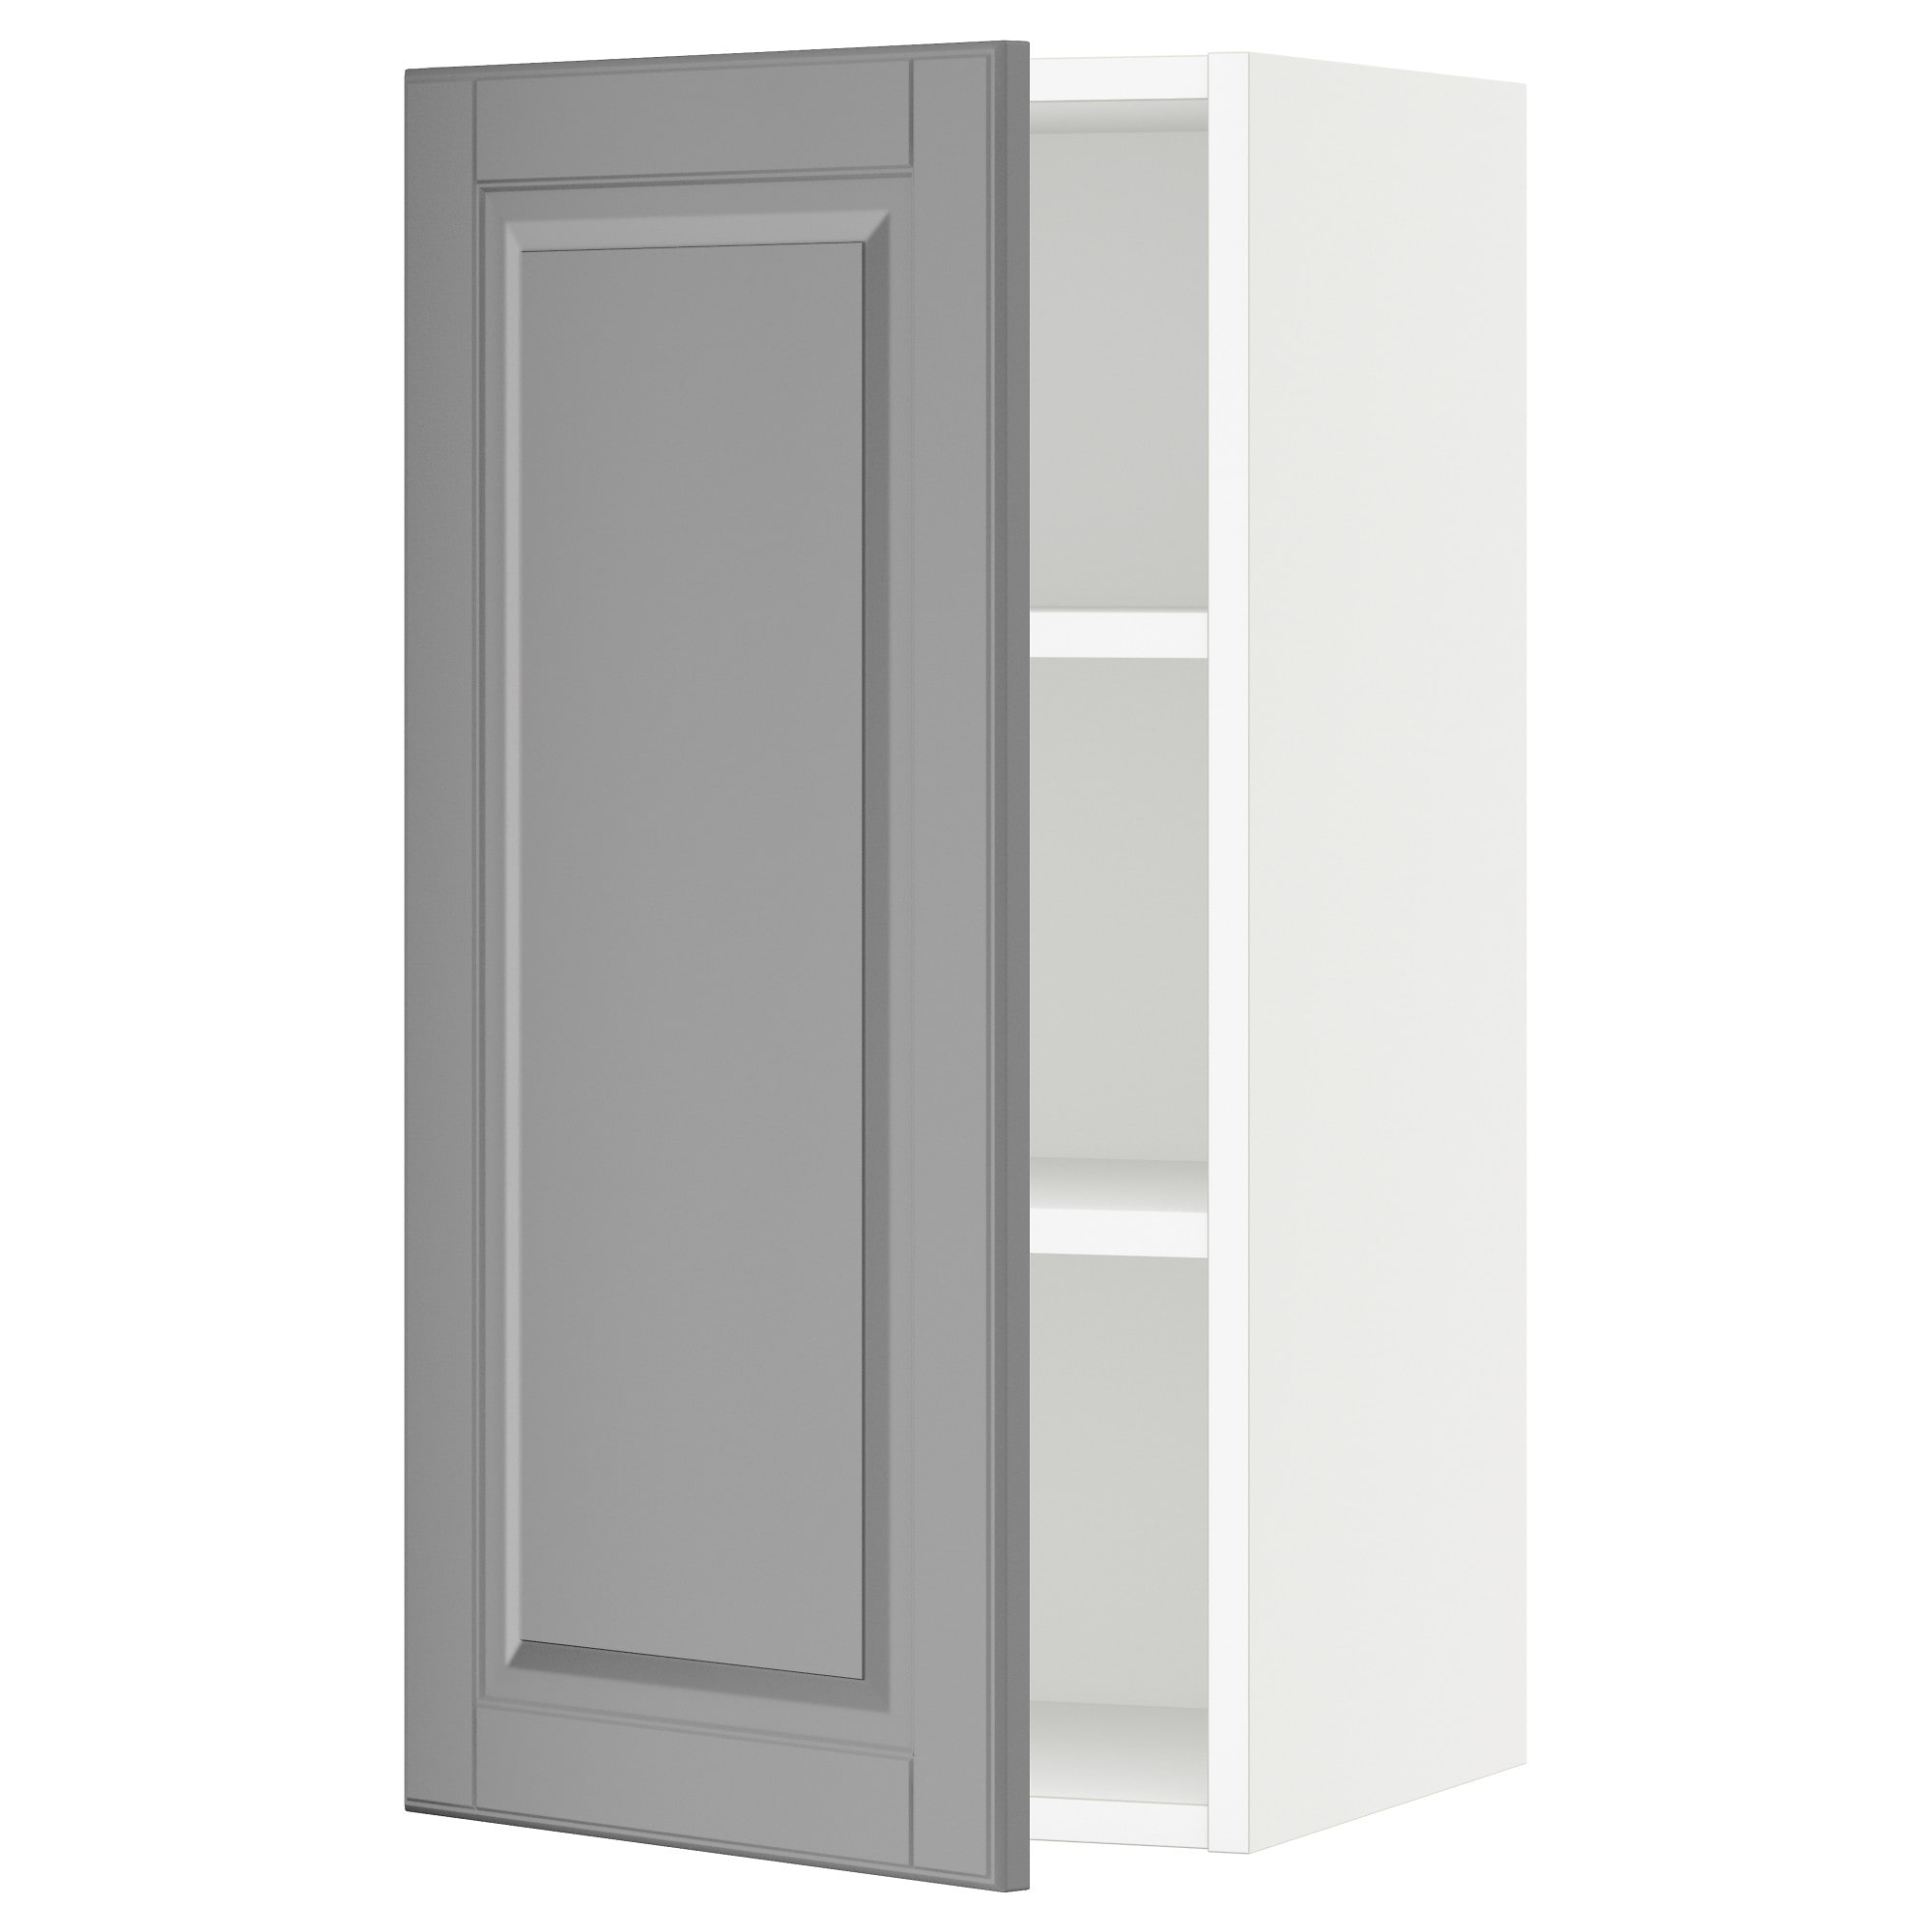 Ikea Akurum Kitchen Cabinets Audidatlevante Com